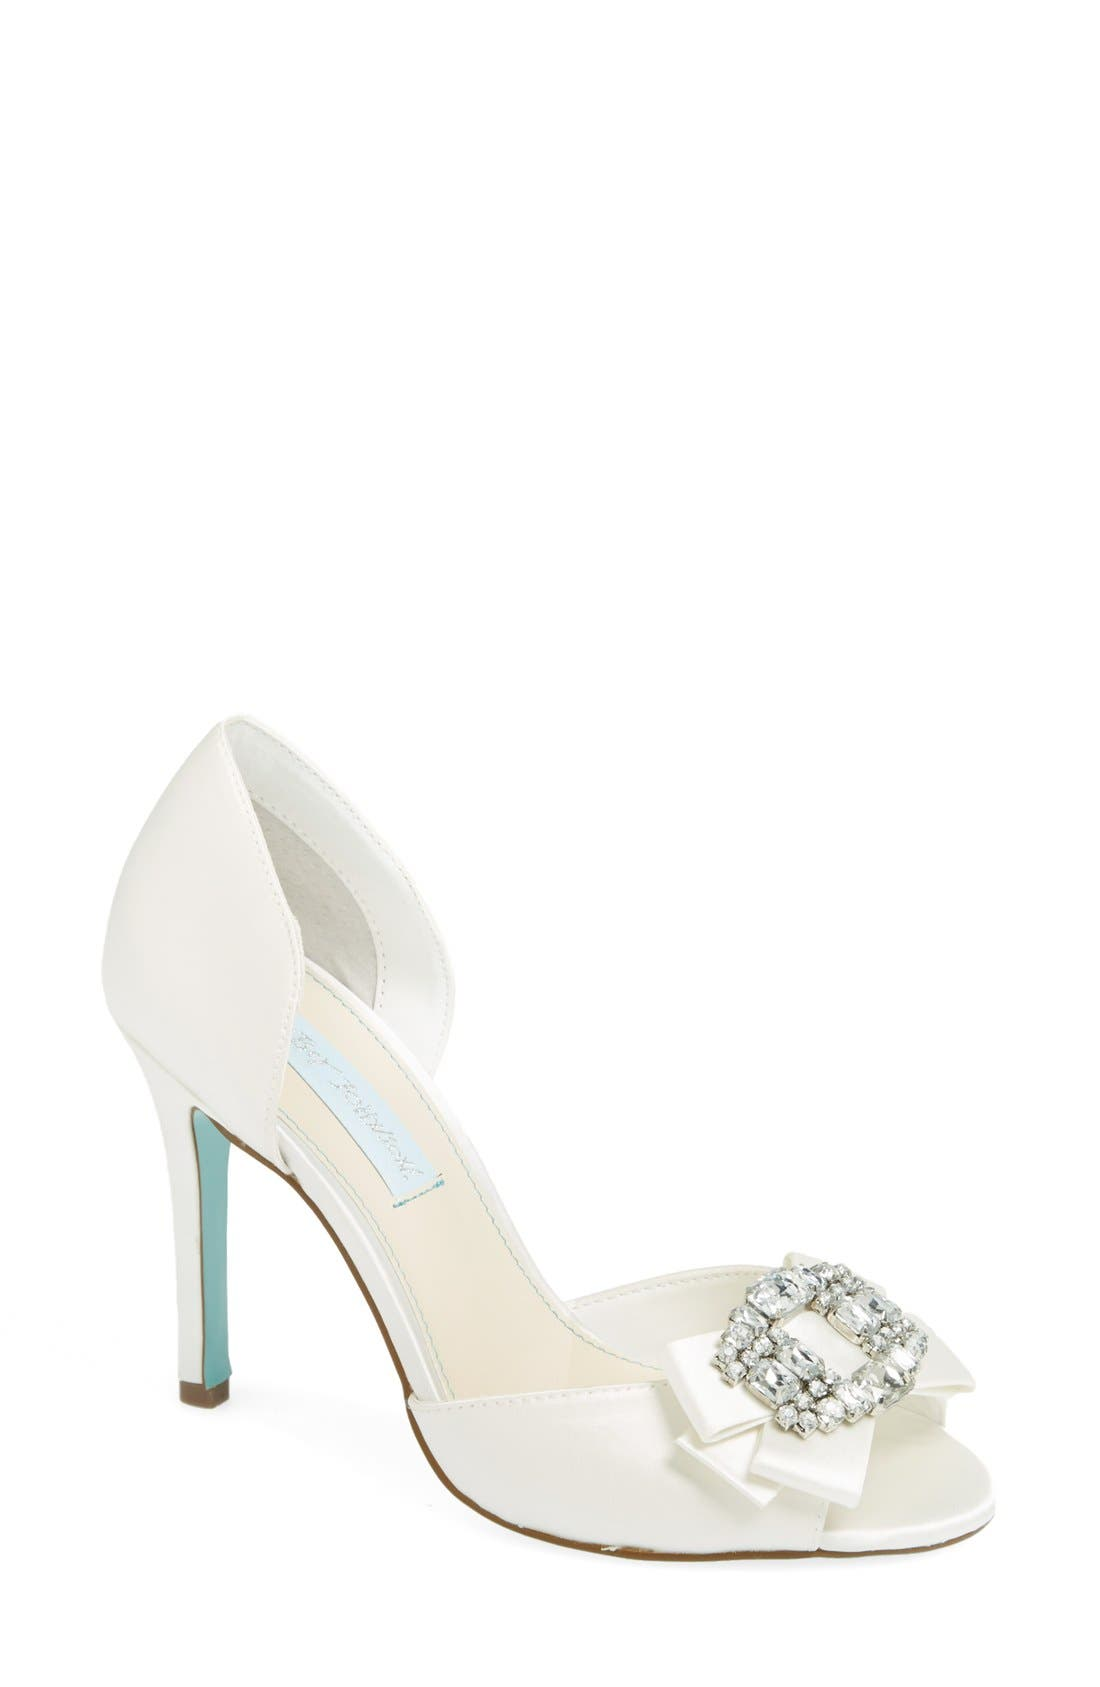 Main Image - Betsey Johnson 'Glam' Sandal